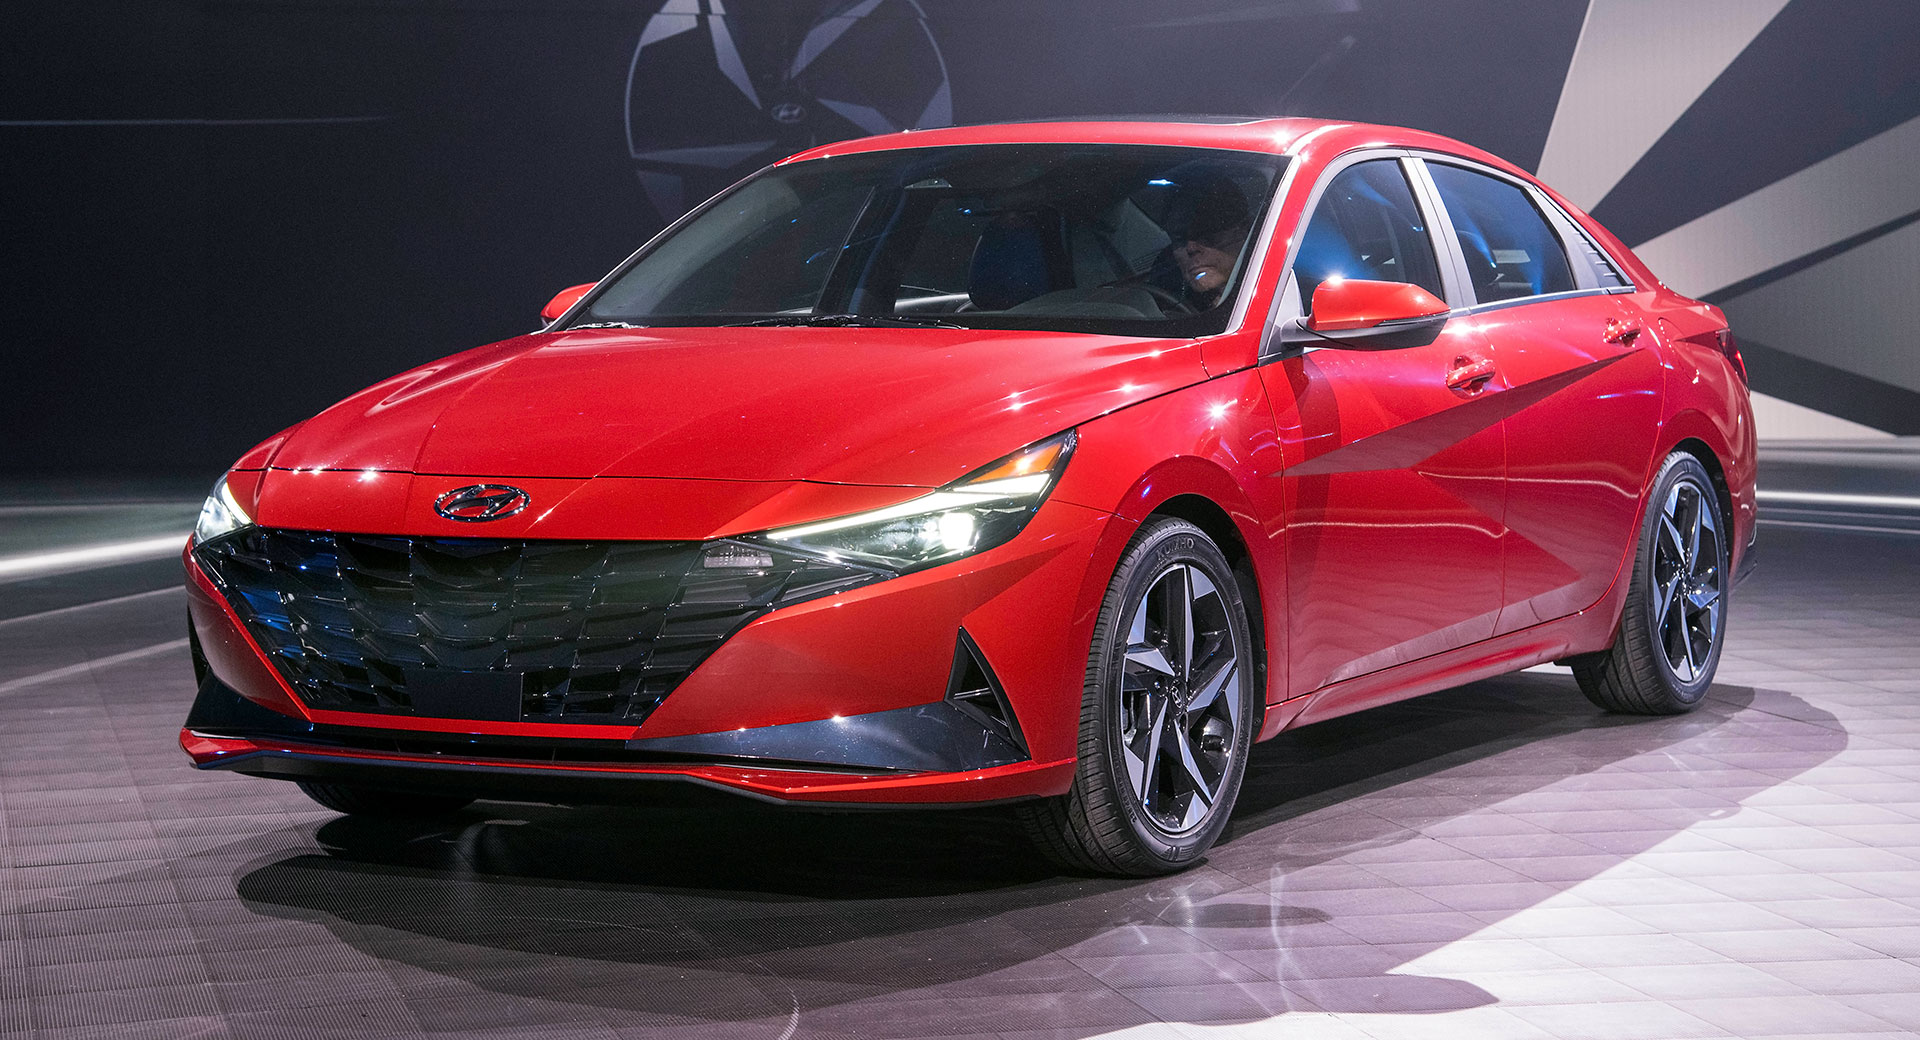 2021 Hyundai Elantra Debuts With Four-Door Coupe Body, New ...